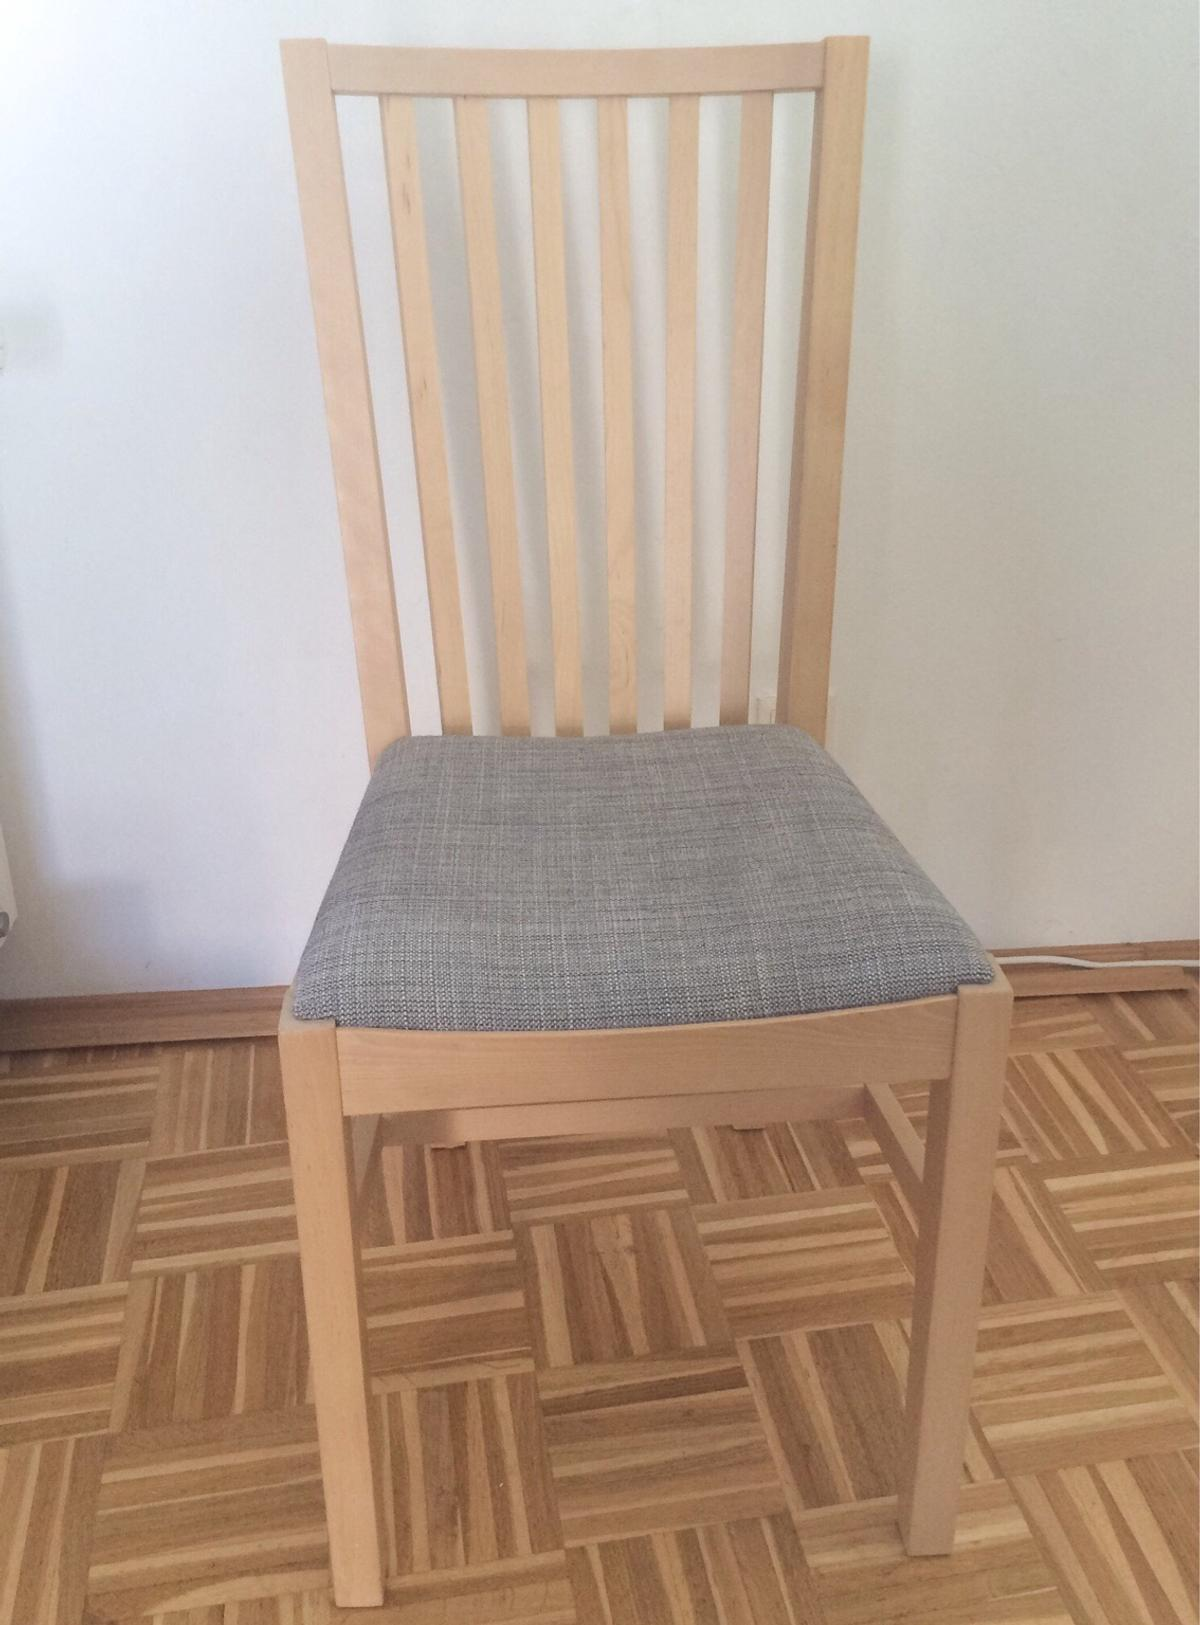 Ikea Norrnäs Stuhl Birke In 8010 Graz For €30 00 For Sale